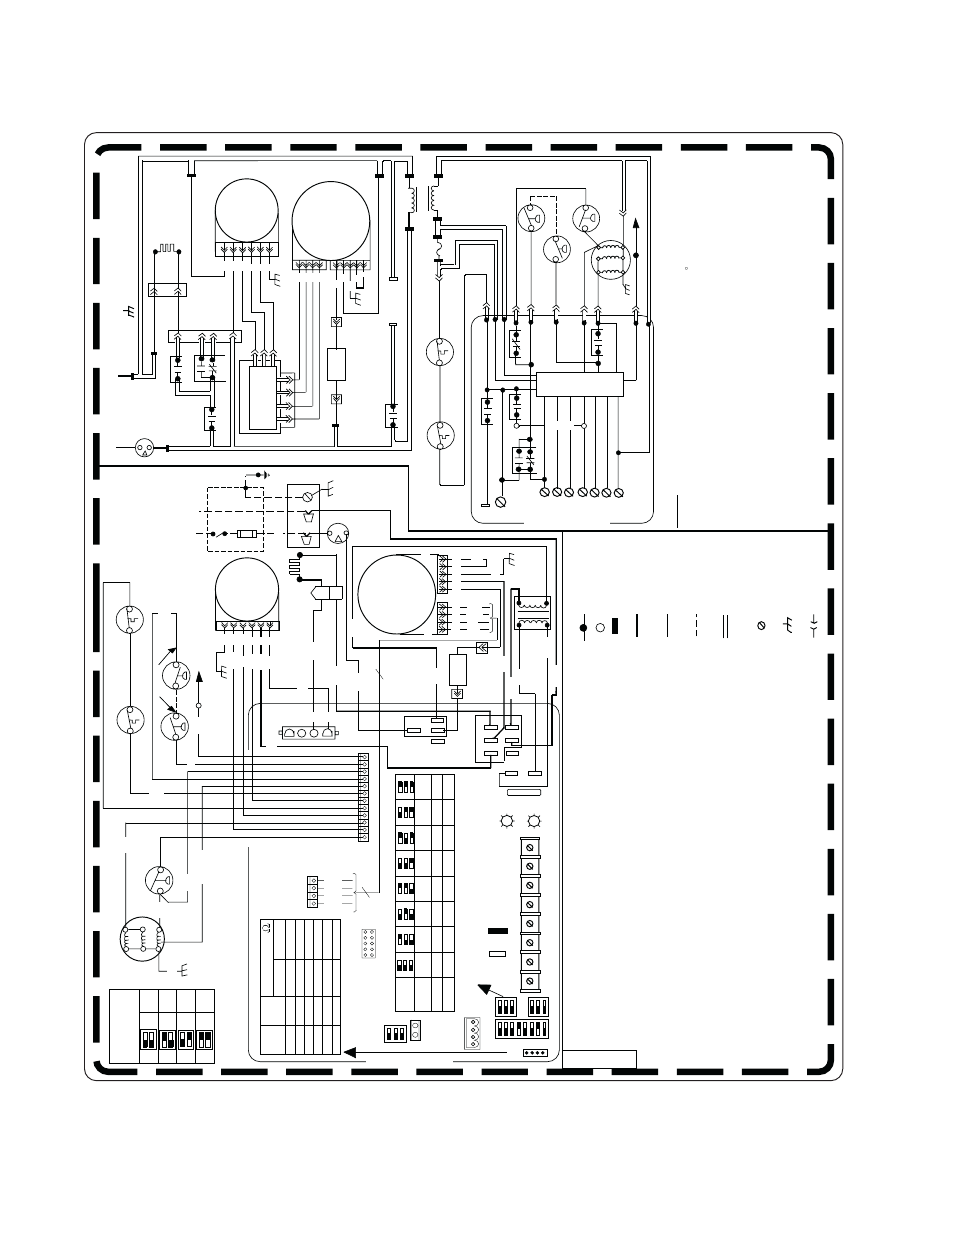 hight resolution of fig 18 wiring diagram bryant 355mav user manual page 14 20 bryant humidifier wiring diagram